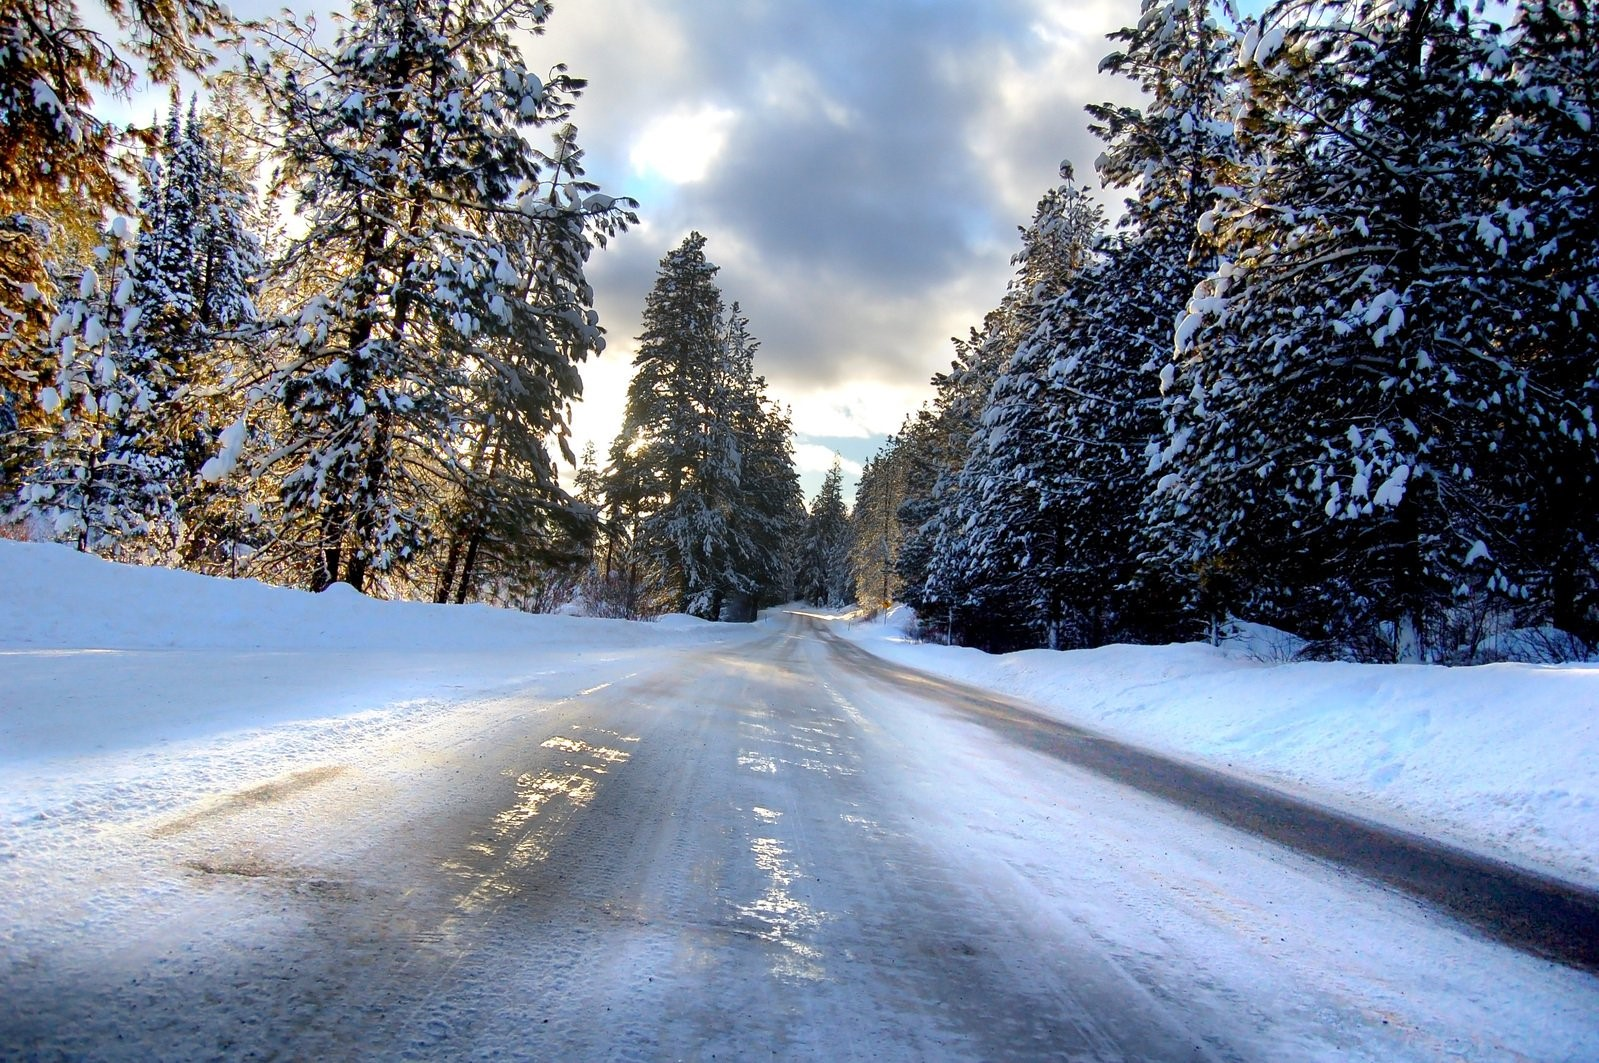 Truck drivers, winter driving tips, icy road trucks